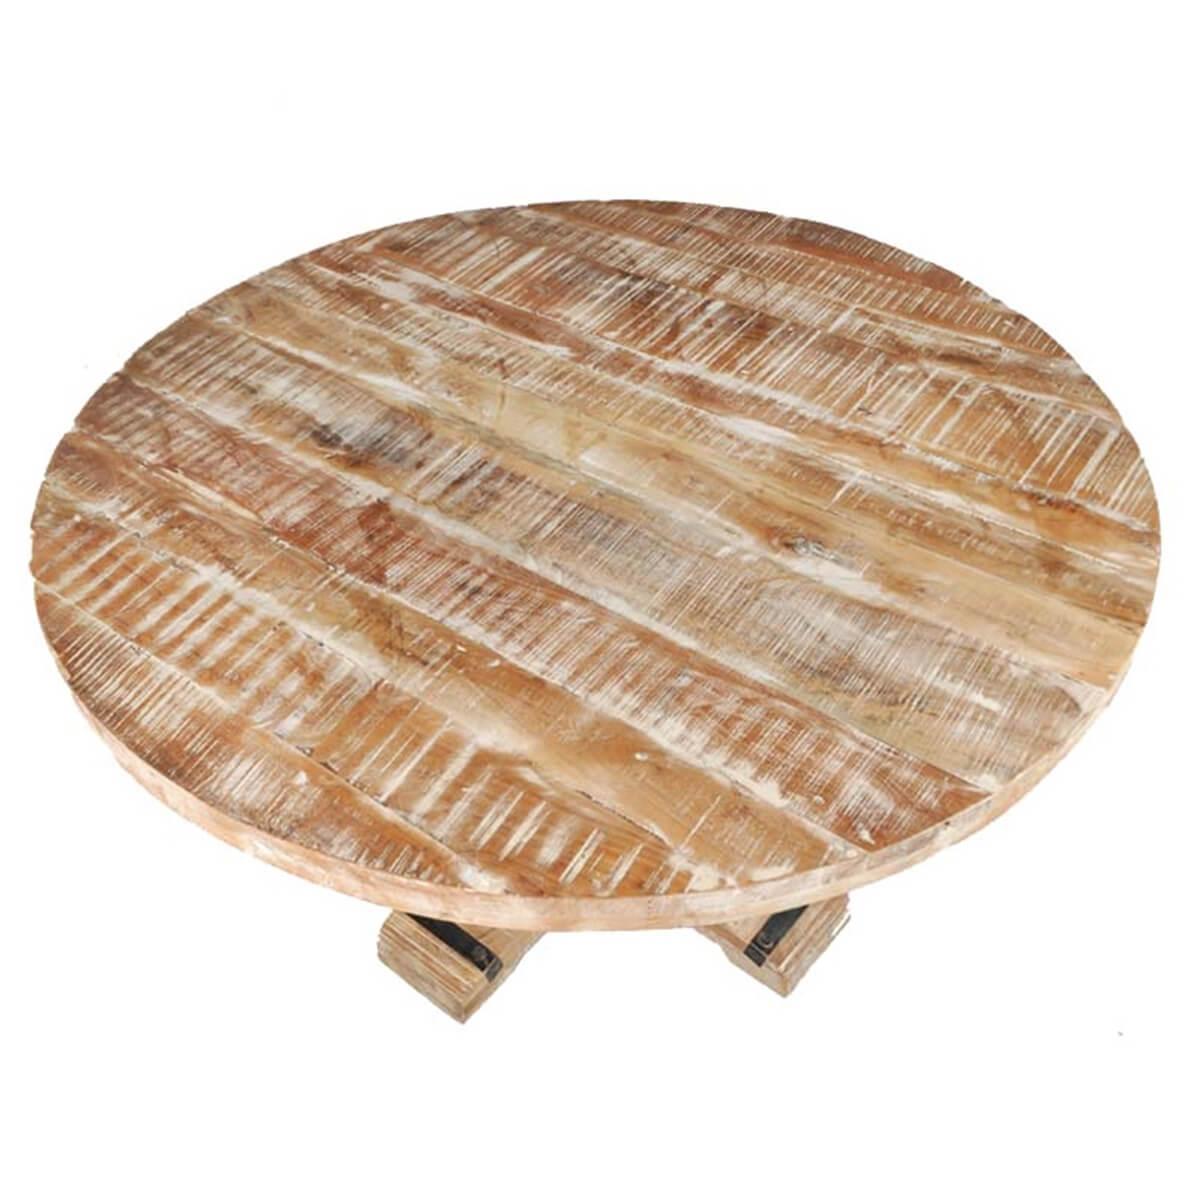 Wood Round Dining Table: Rustic Mango Wood Pedestal Round Dining Table